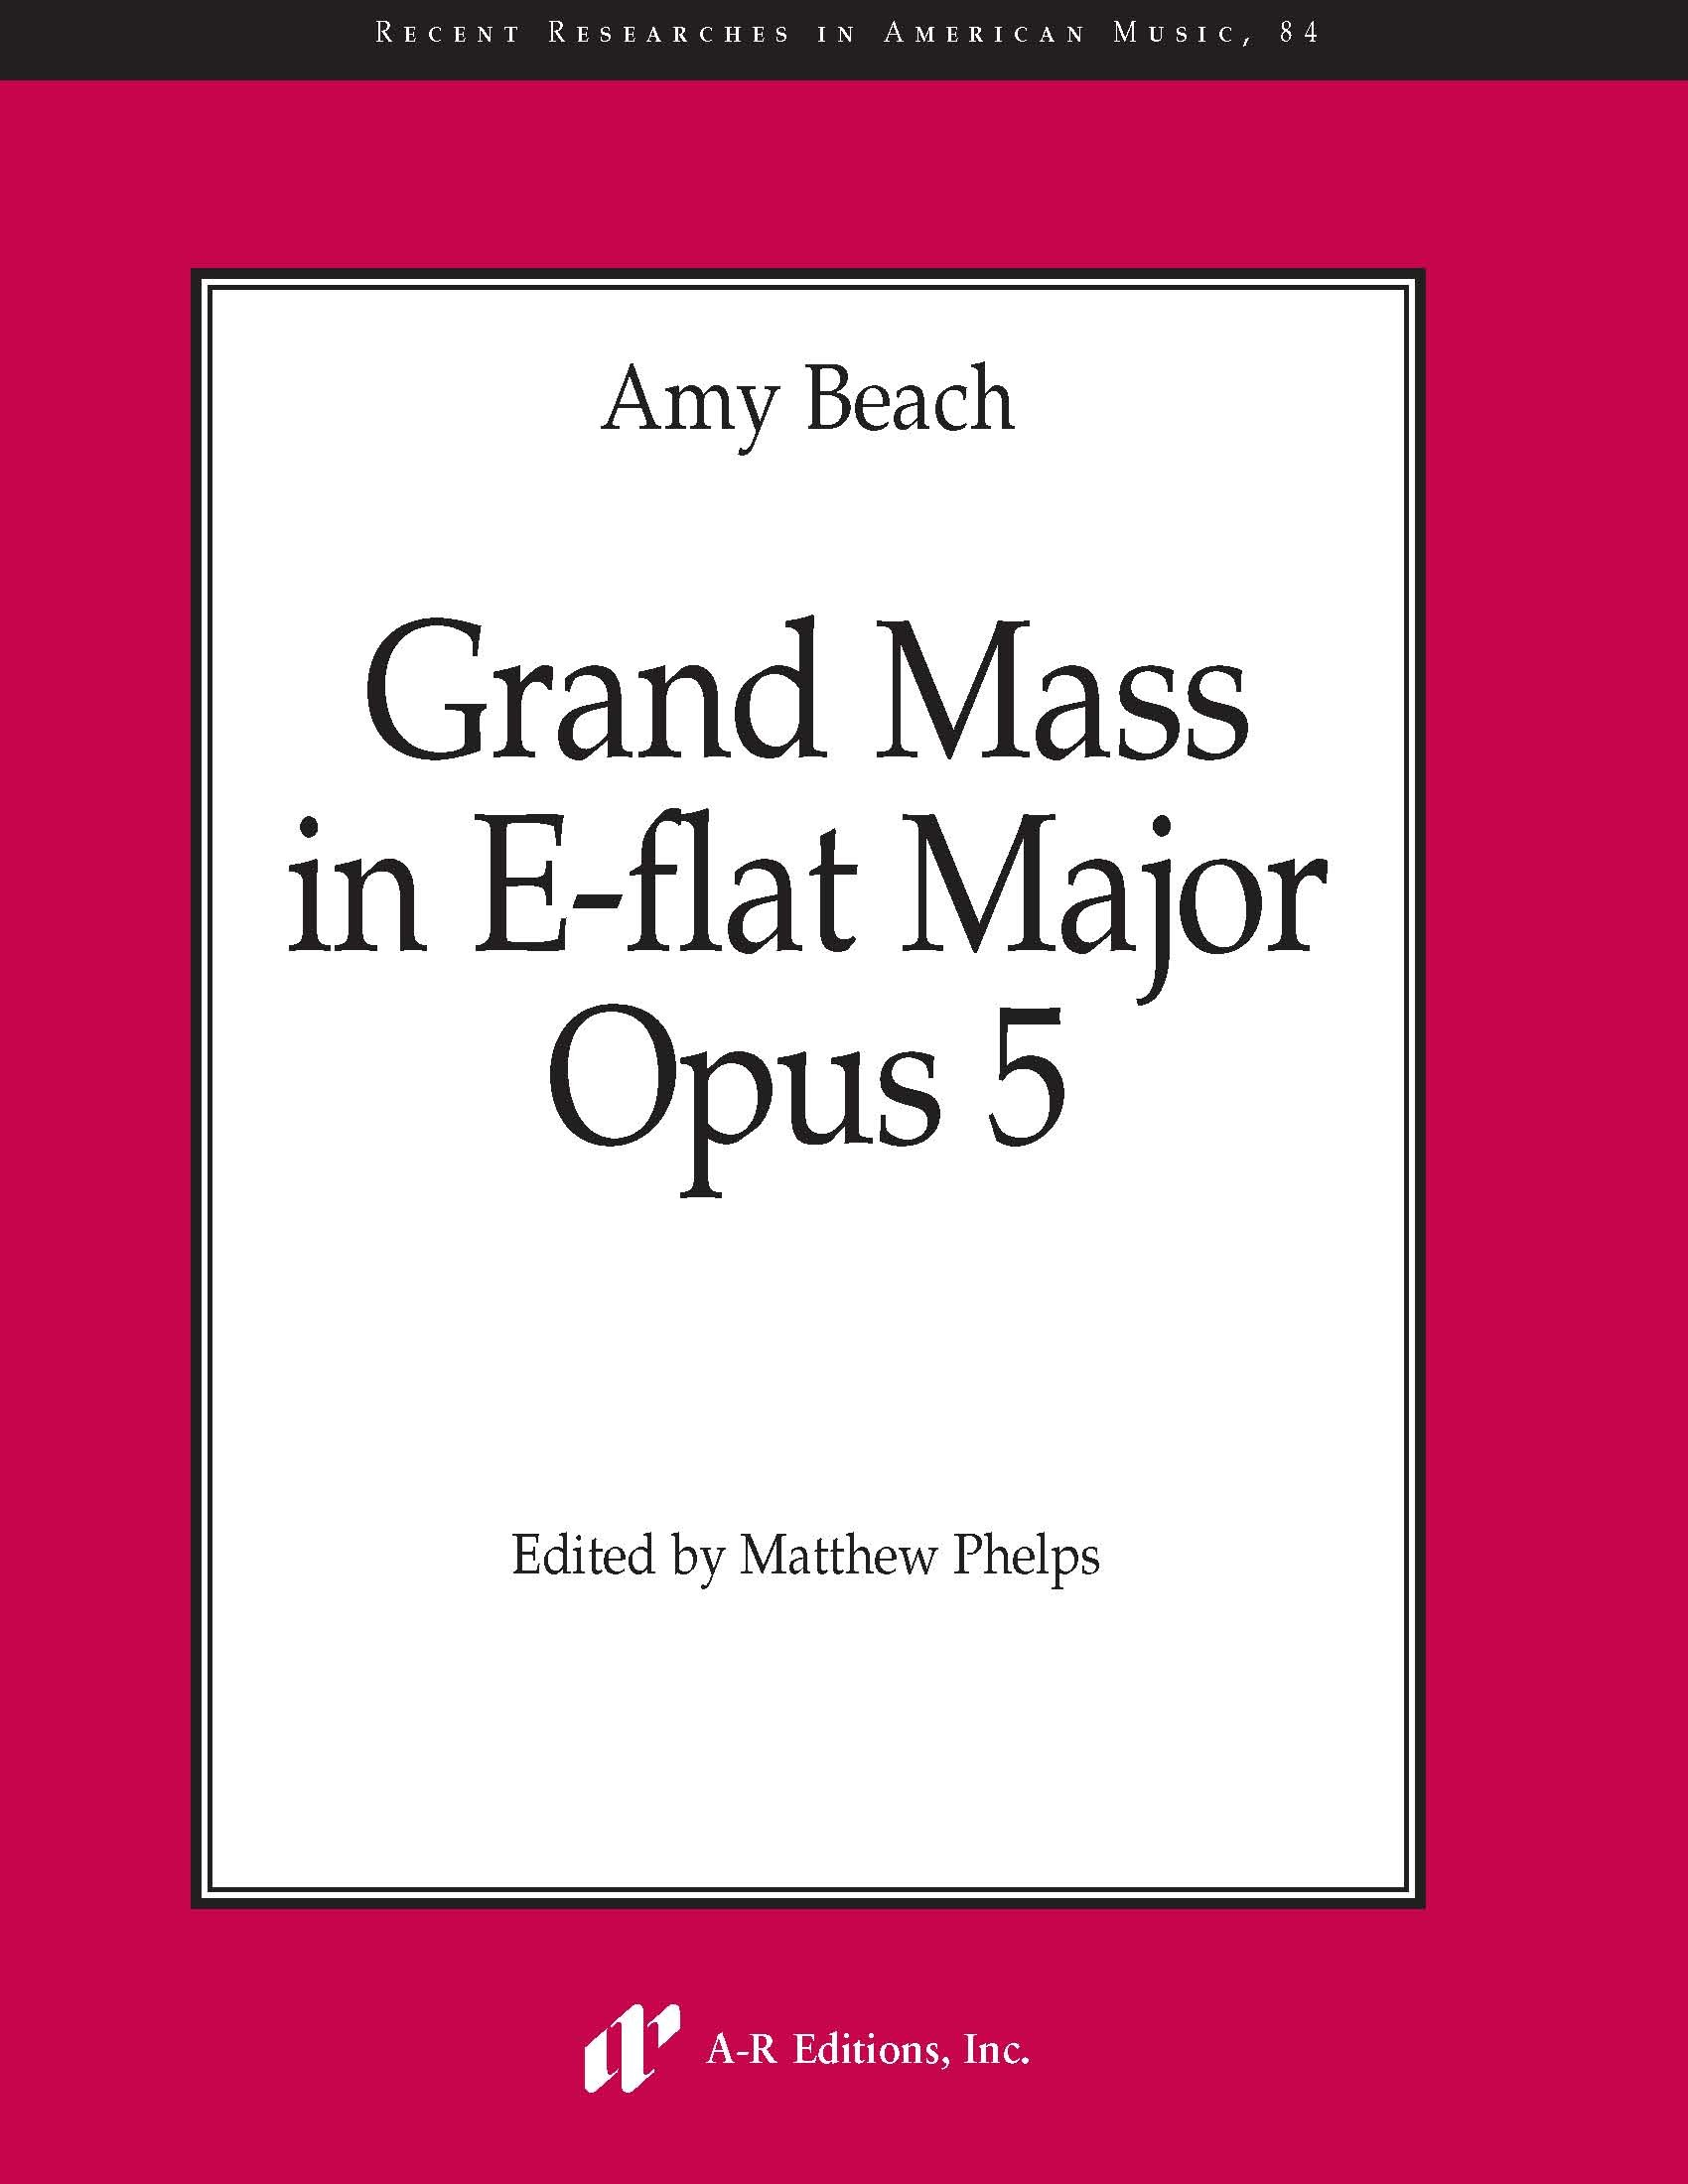 Beach: Grand Mass in E-flat Major, Opus 5